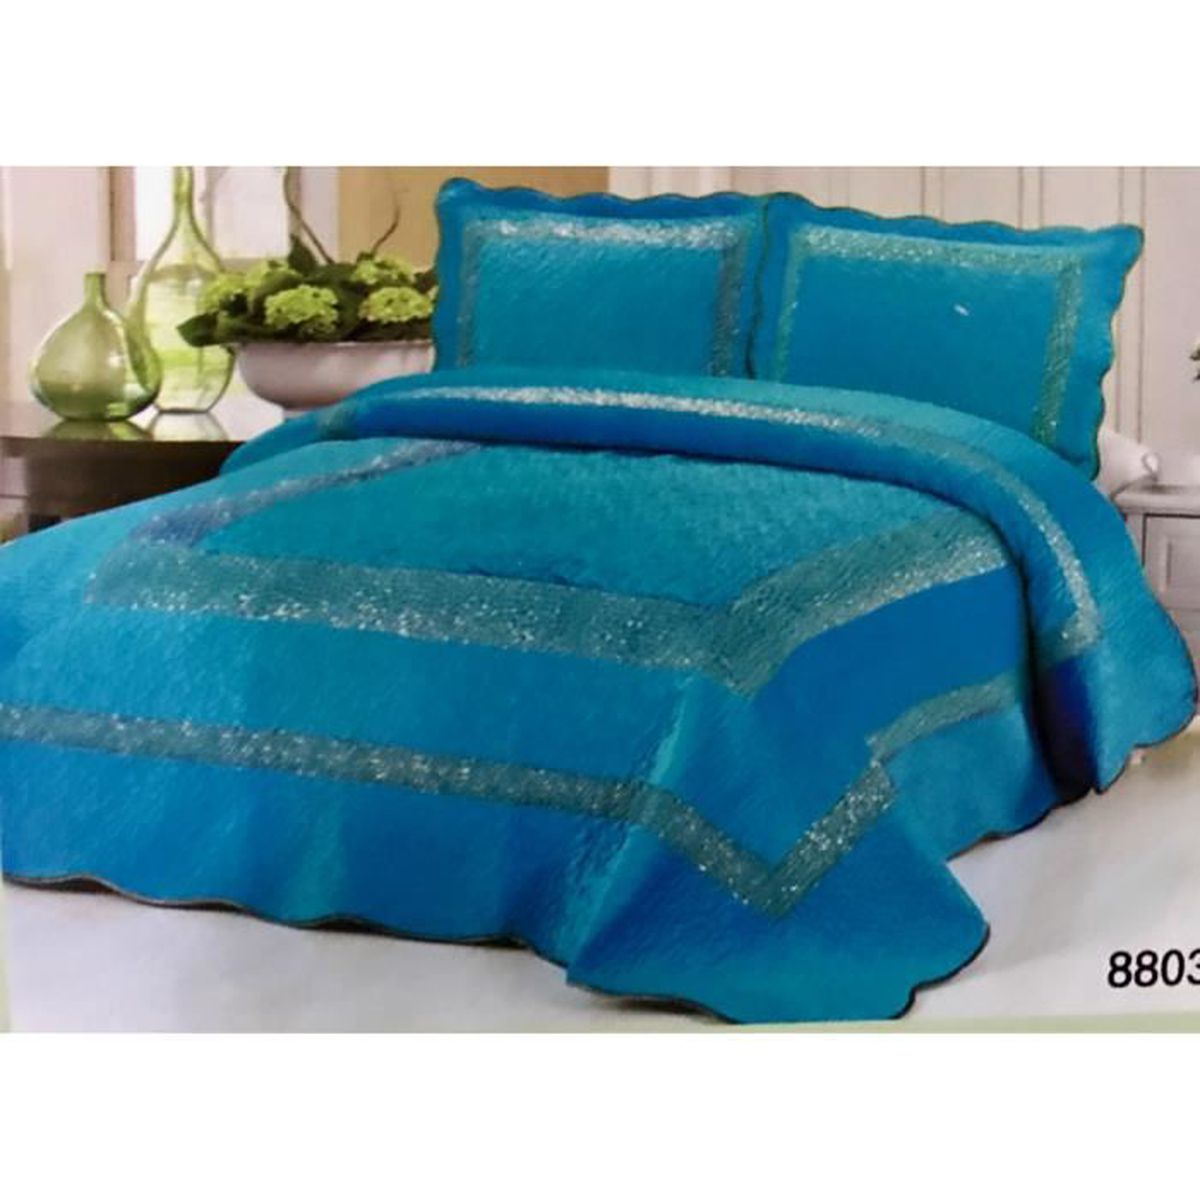 couvre lit turquoise cgmrotterdam. Black Bedroom Furniture Sets. Home Design Ideas